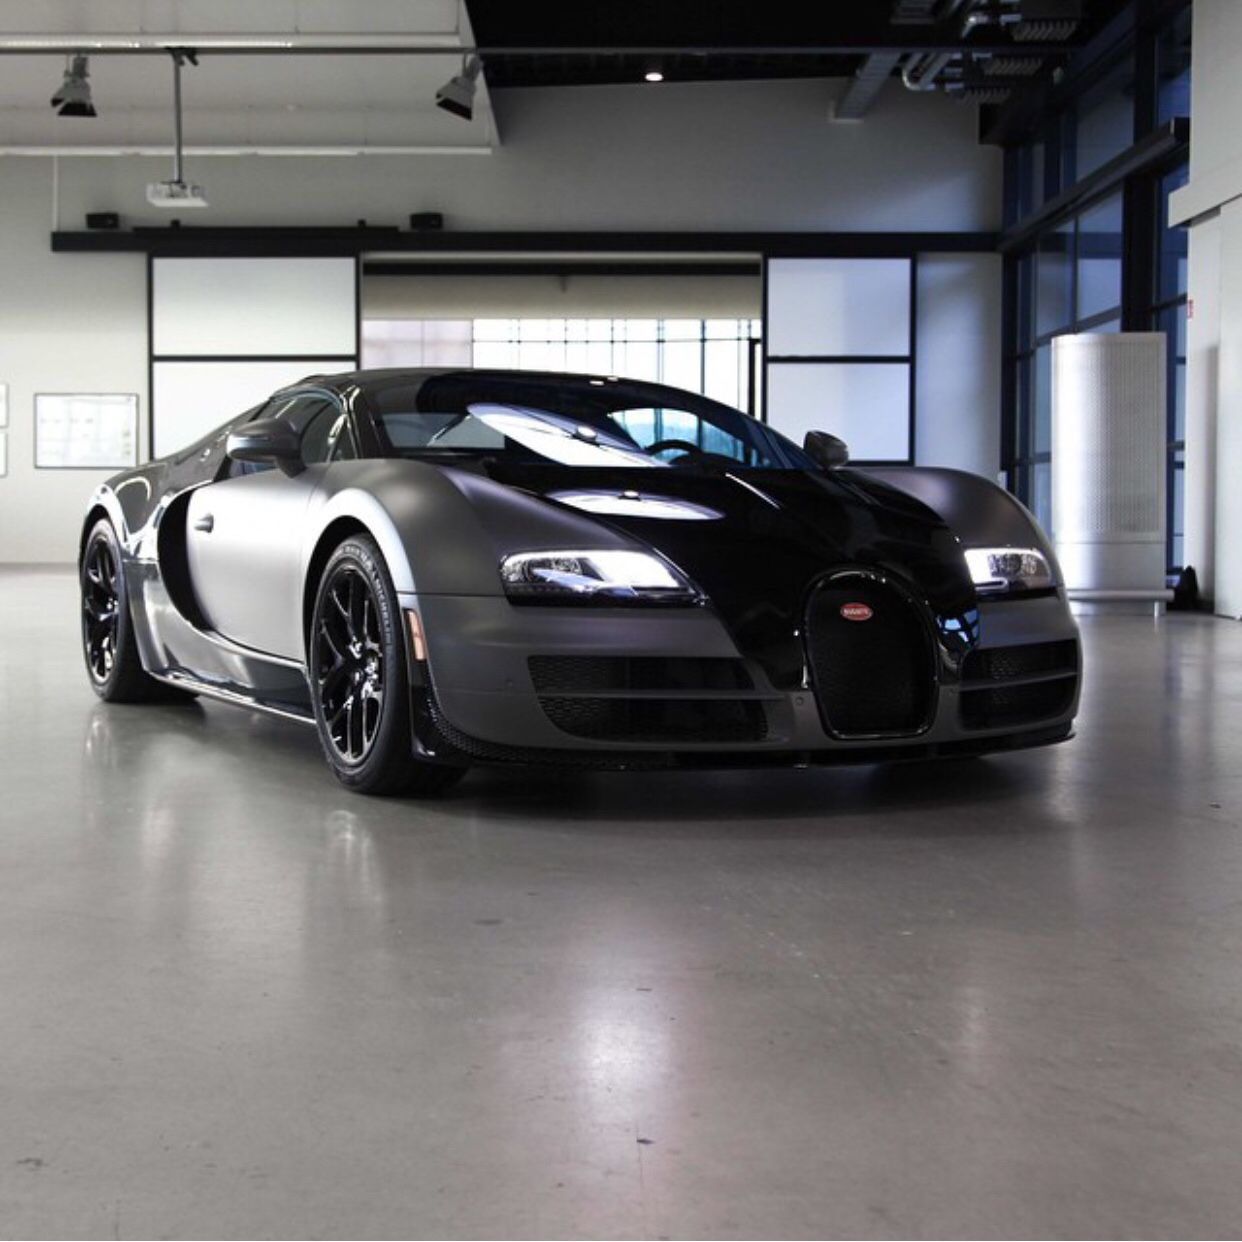 Bugatti Veyron Grand Sport Vitesse Painted In Black And